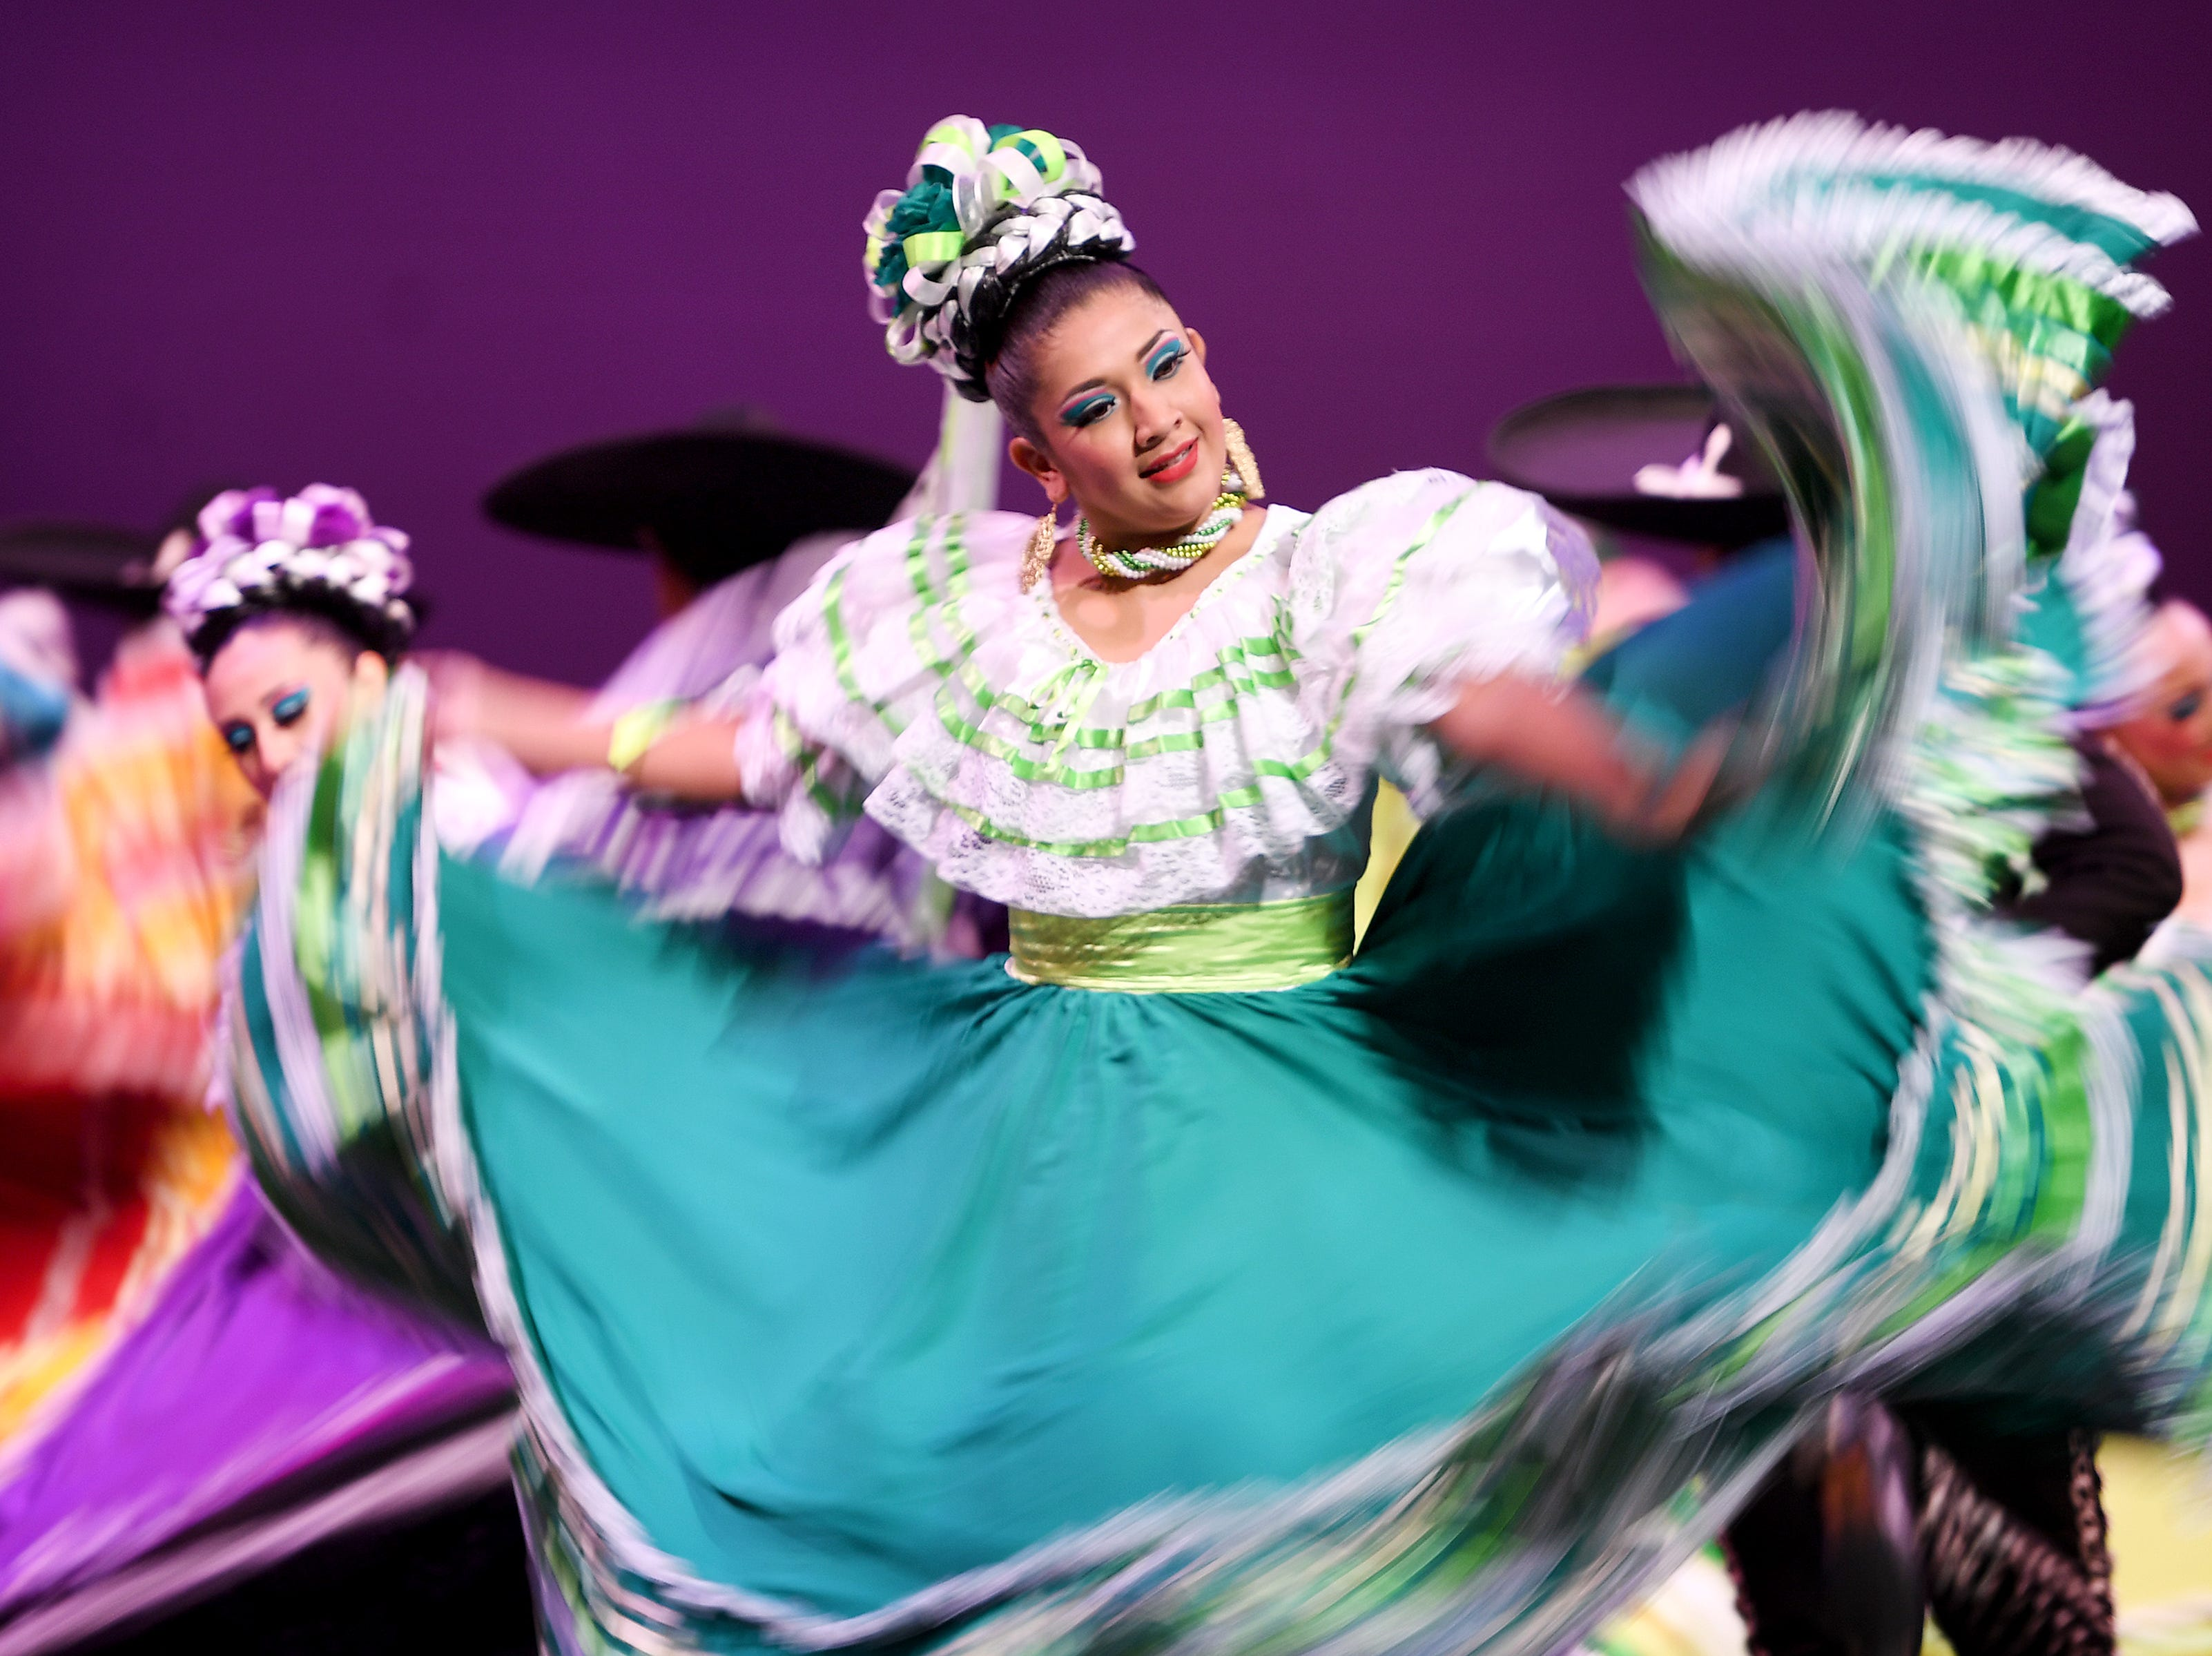 """Members of """"Fiesta Mexicana"""" Ballet Folklorico of Monterrey perform representing Mexico through dance during a Folkmoot Festival performance at the Diana Wortham Theatre on Friday, Aug. 27, 2018."""